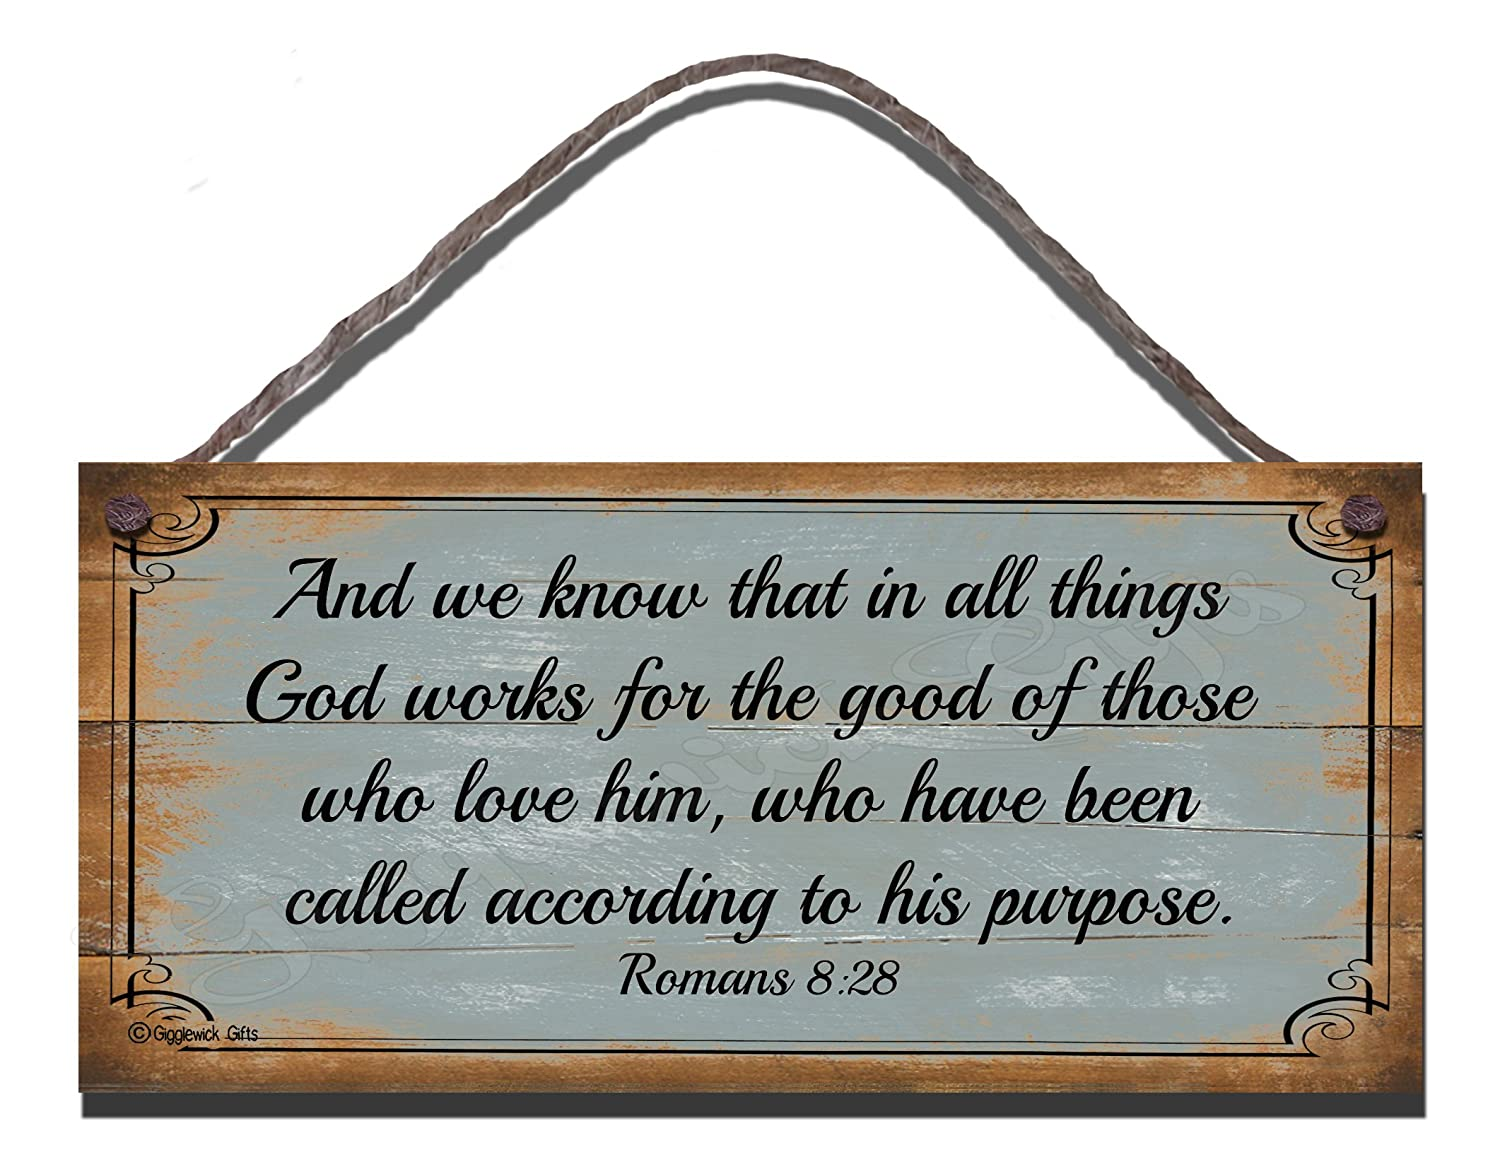 Religious Sign Birthday Occasion Shabby Chic Wooden Wall Plaque And We Know That In All Things God Works For The Good Of Those Love Him Who Have Been